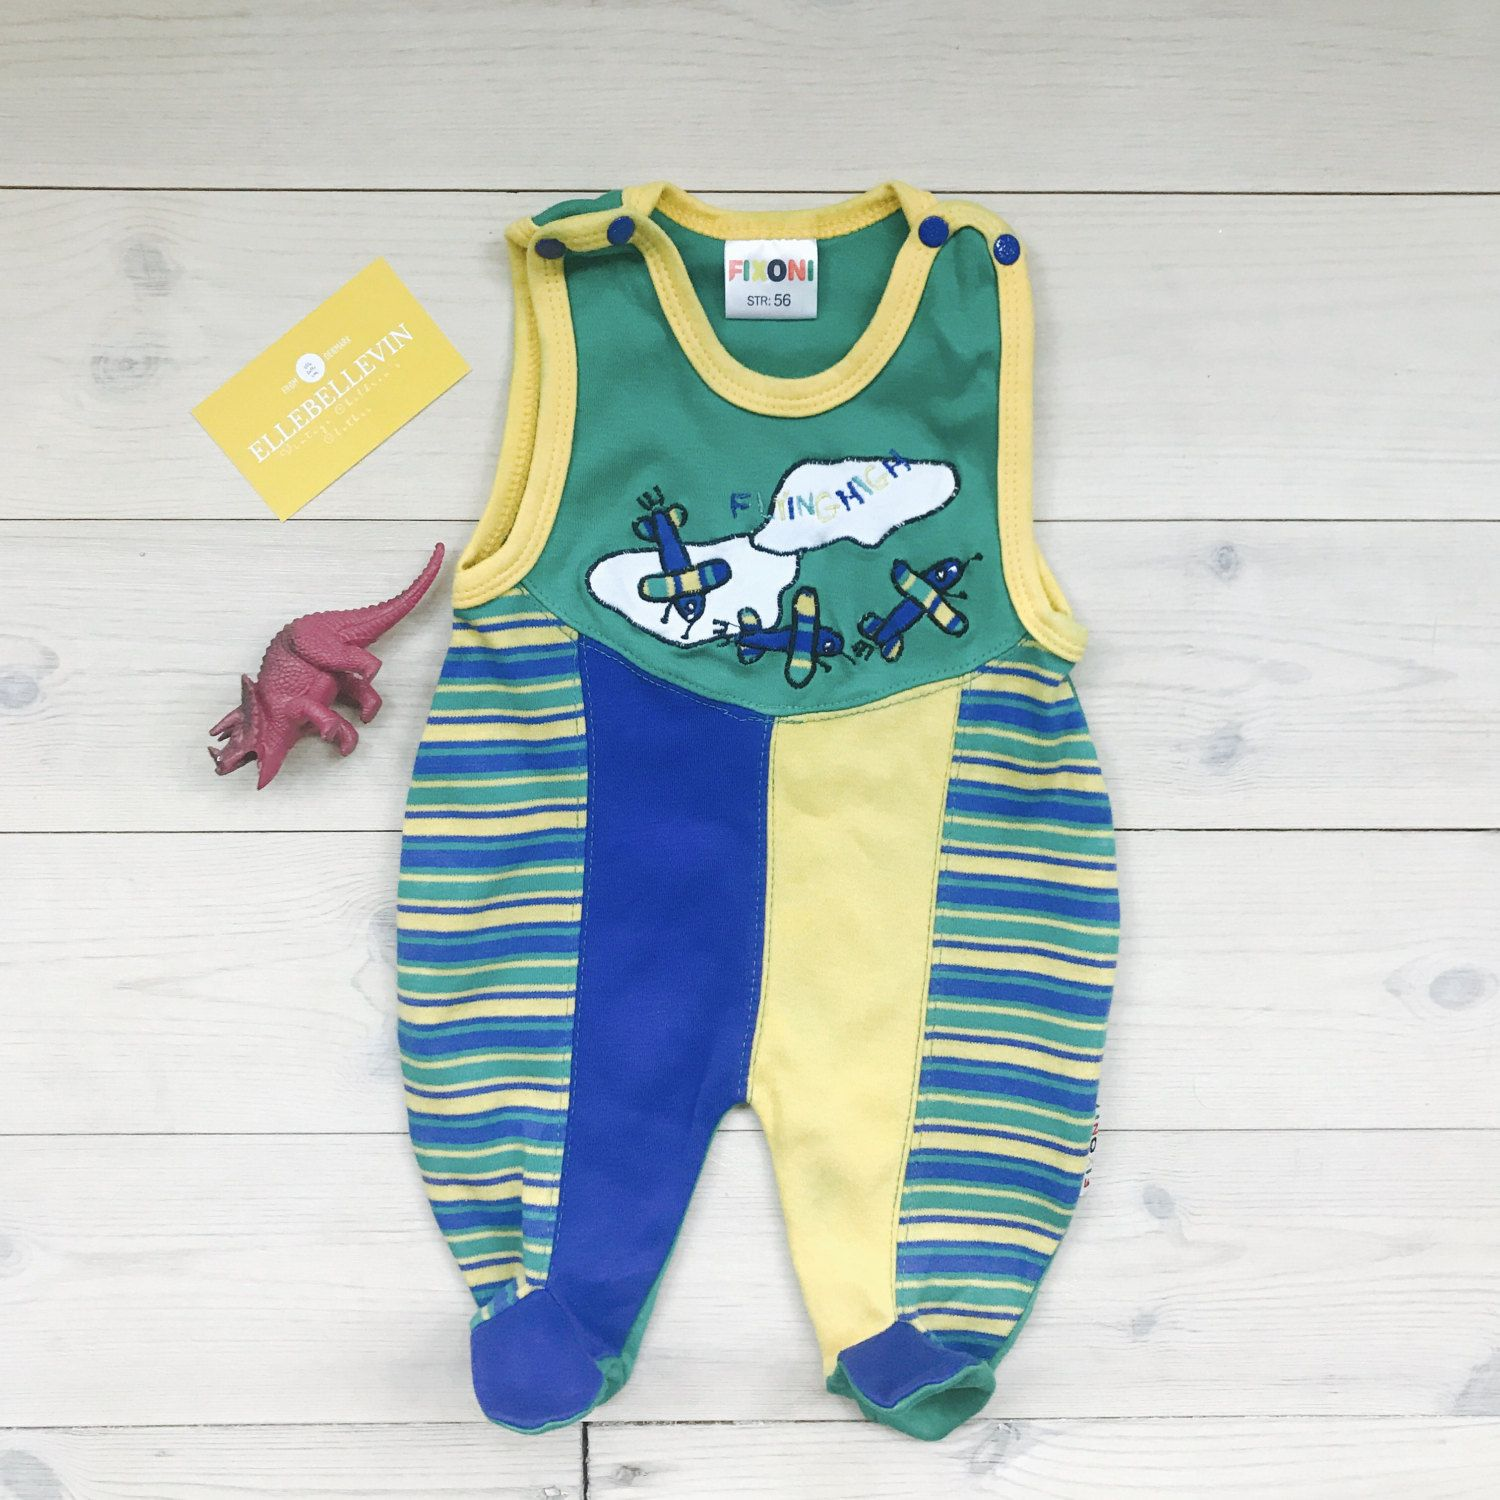 Baby Boy Romper 0 3 months Green Vintage Newborn Footie with